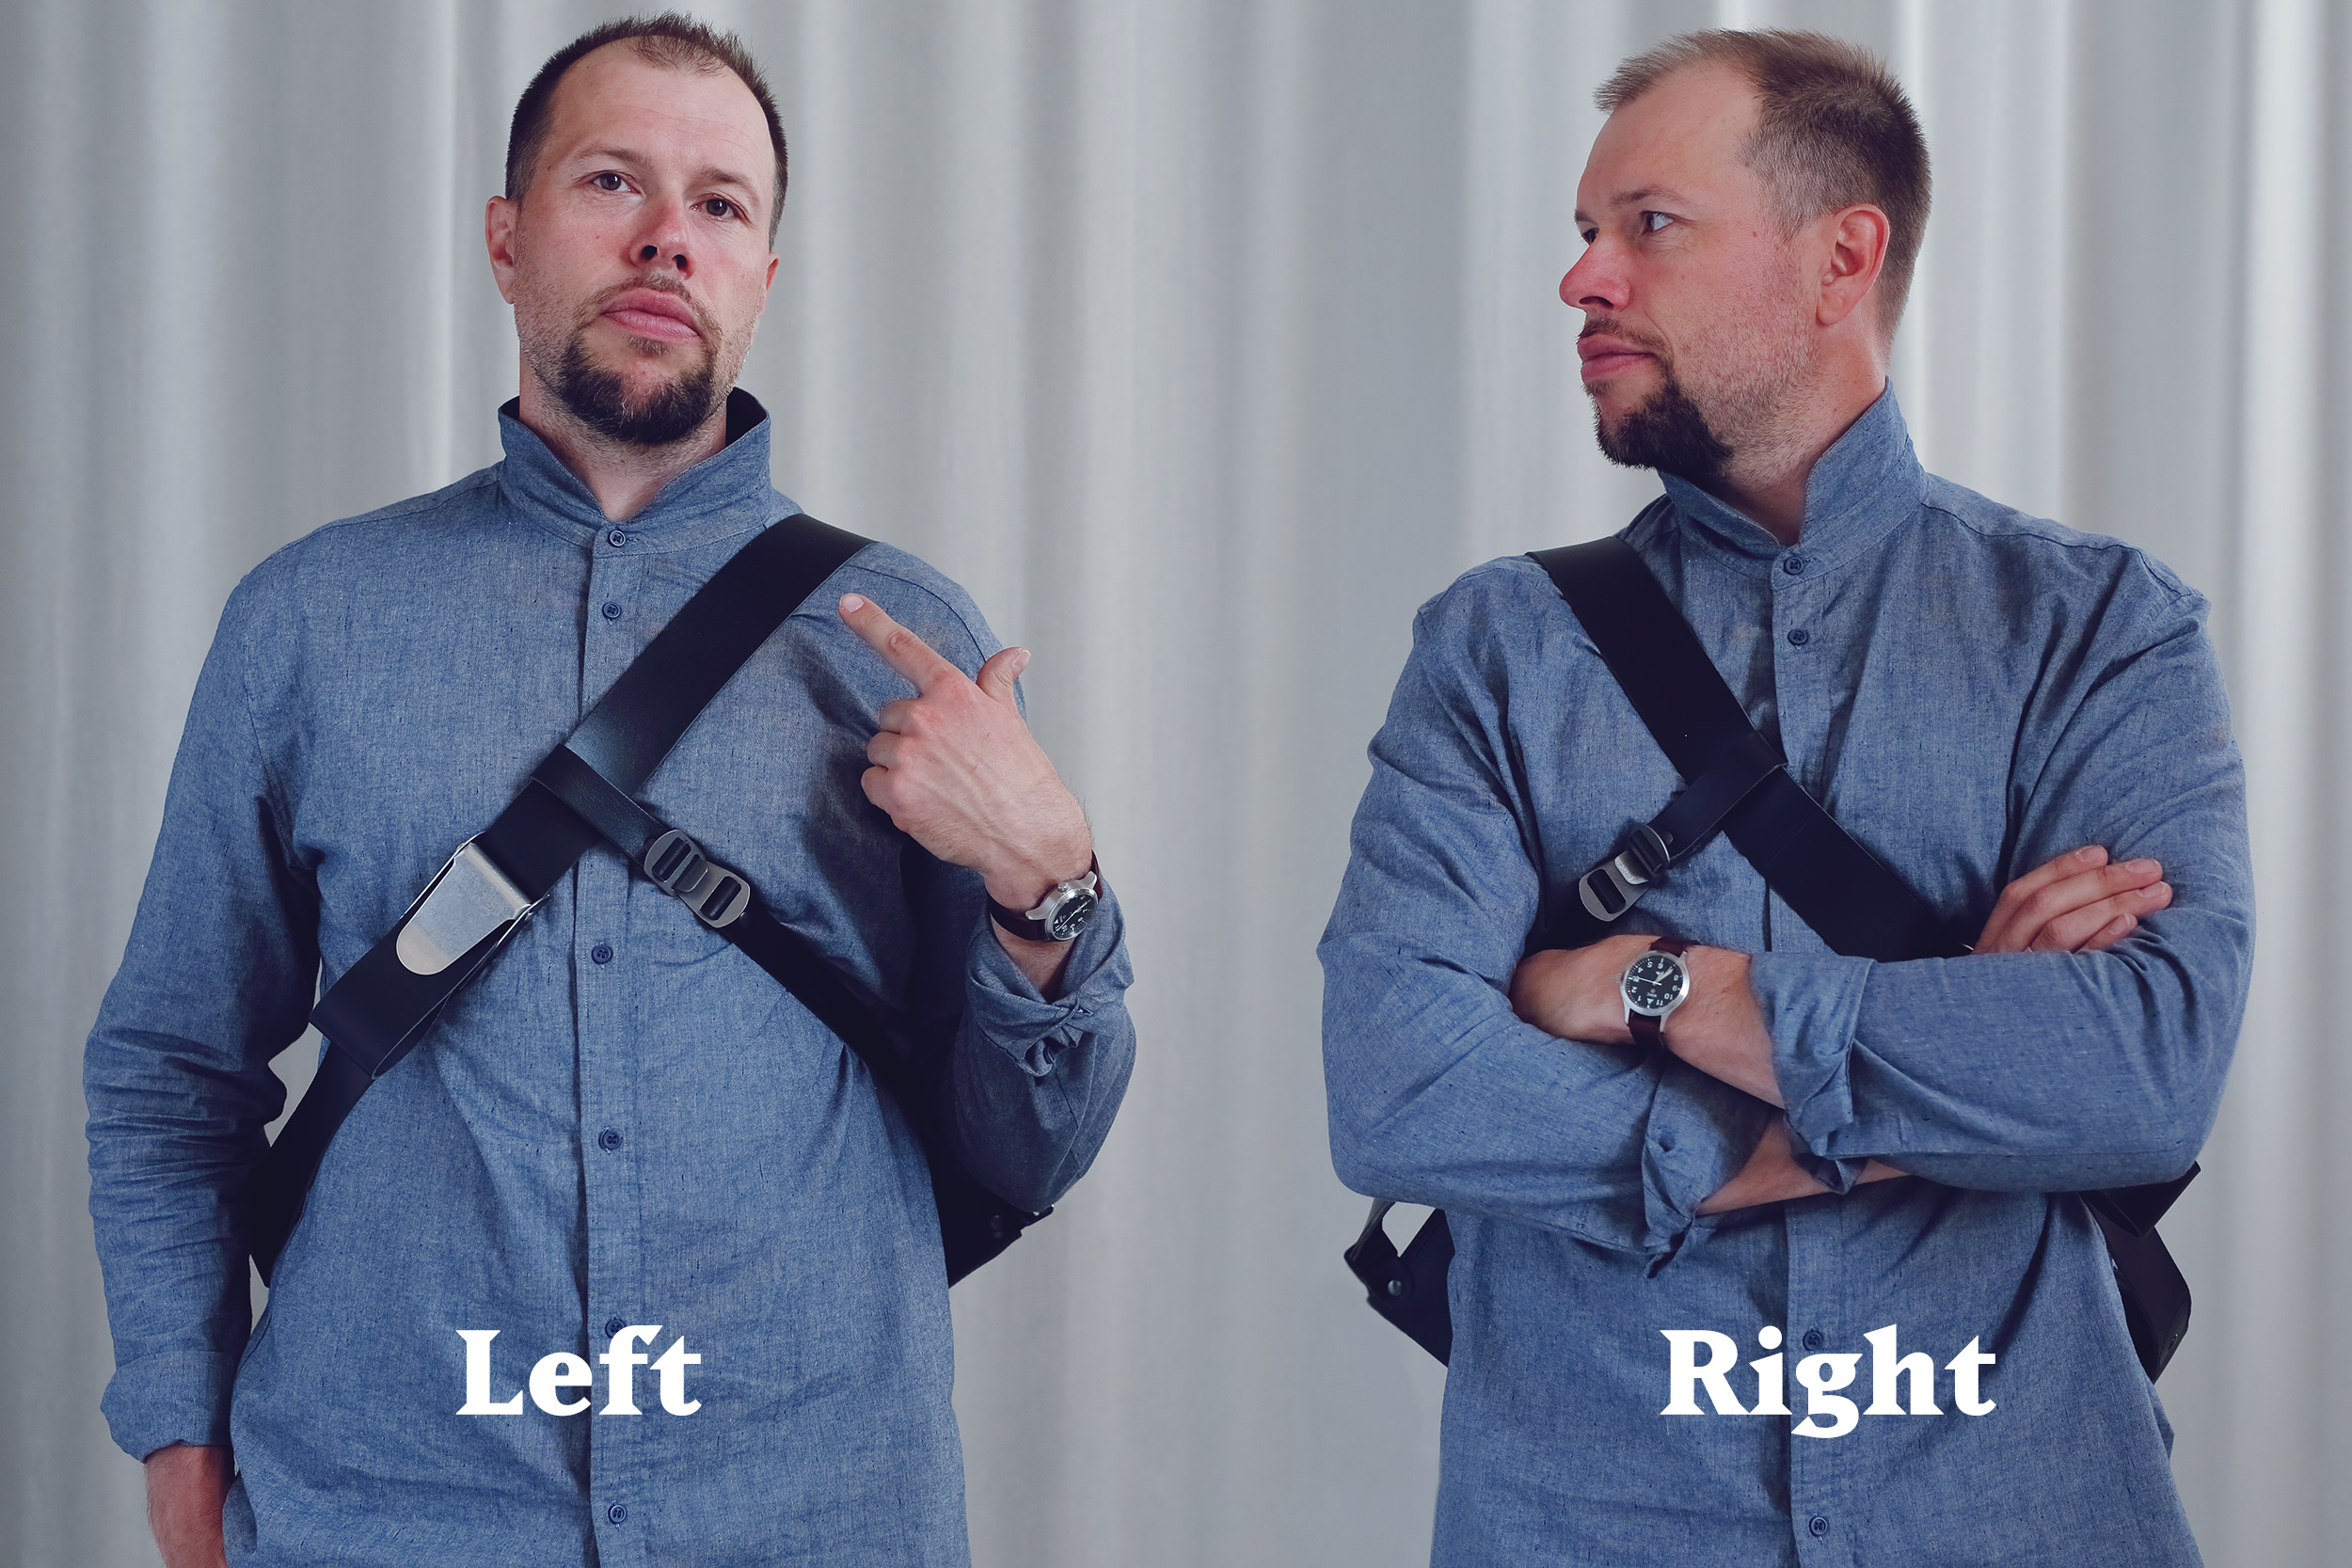 Two versions for wearing mainly on the left or right shoulder.